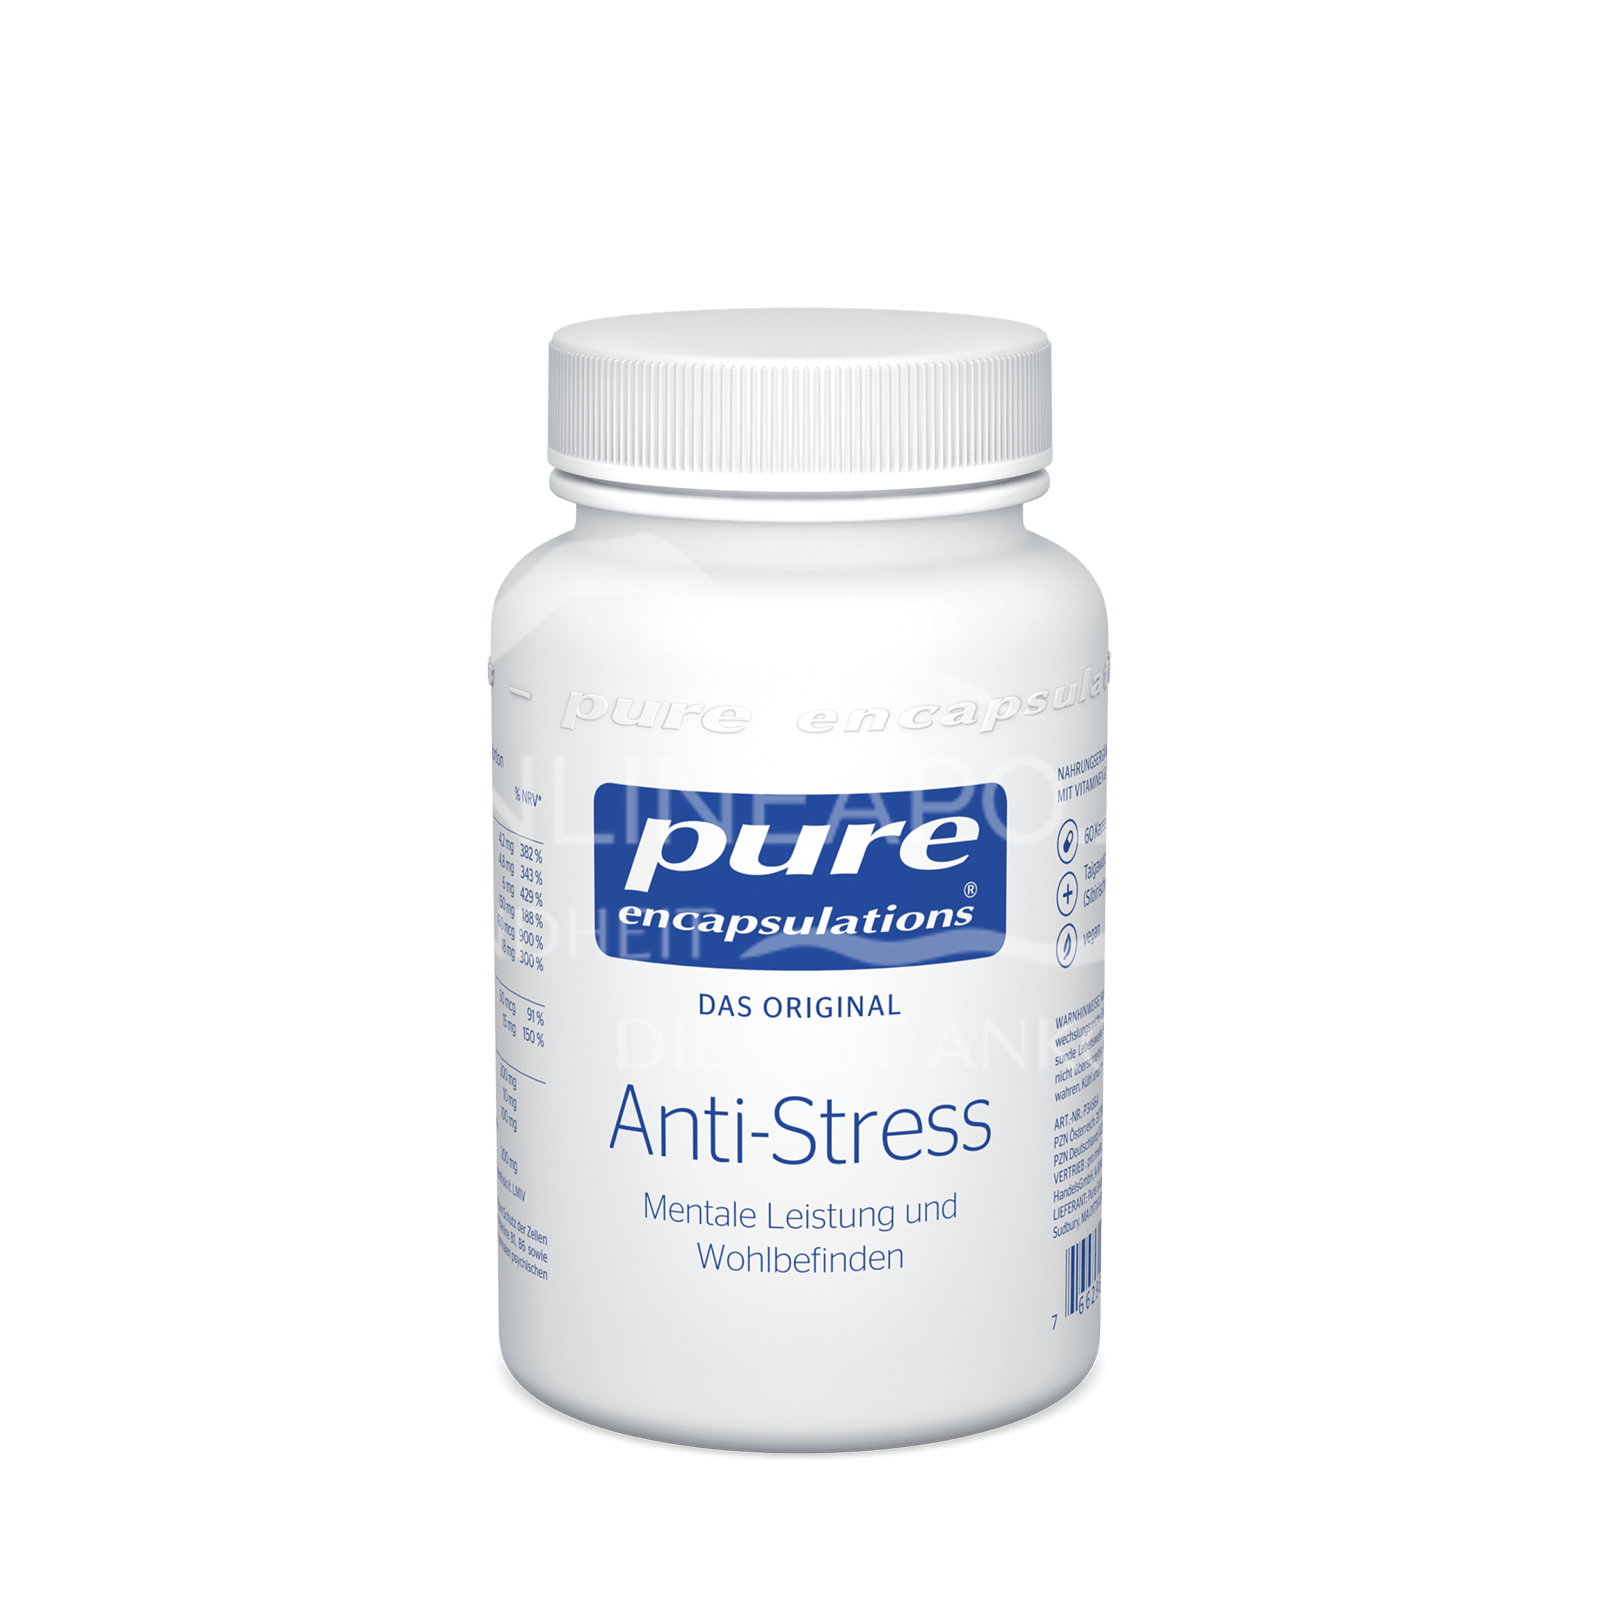 pure encapsulations® Anti-Stress